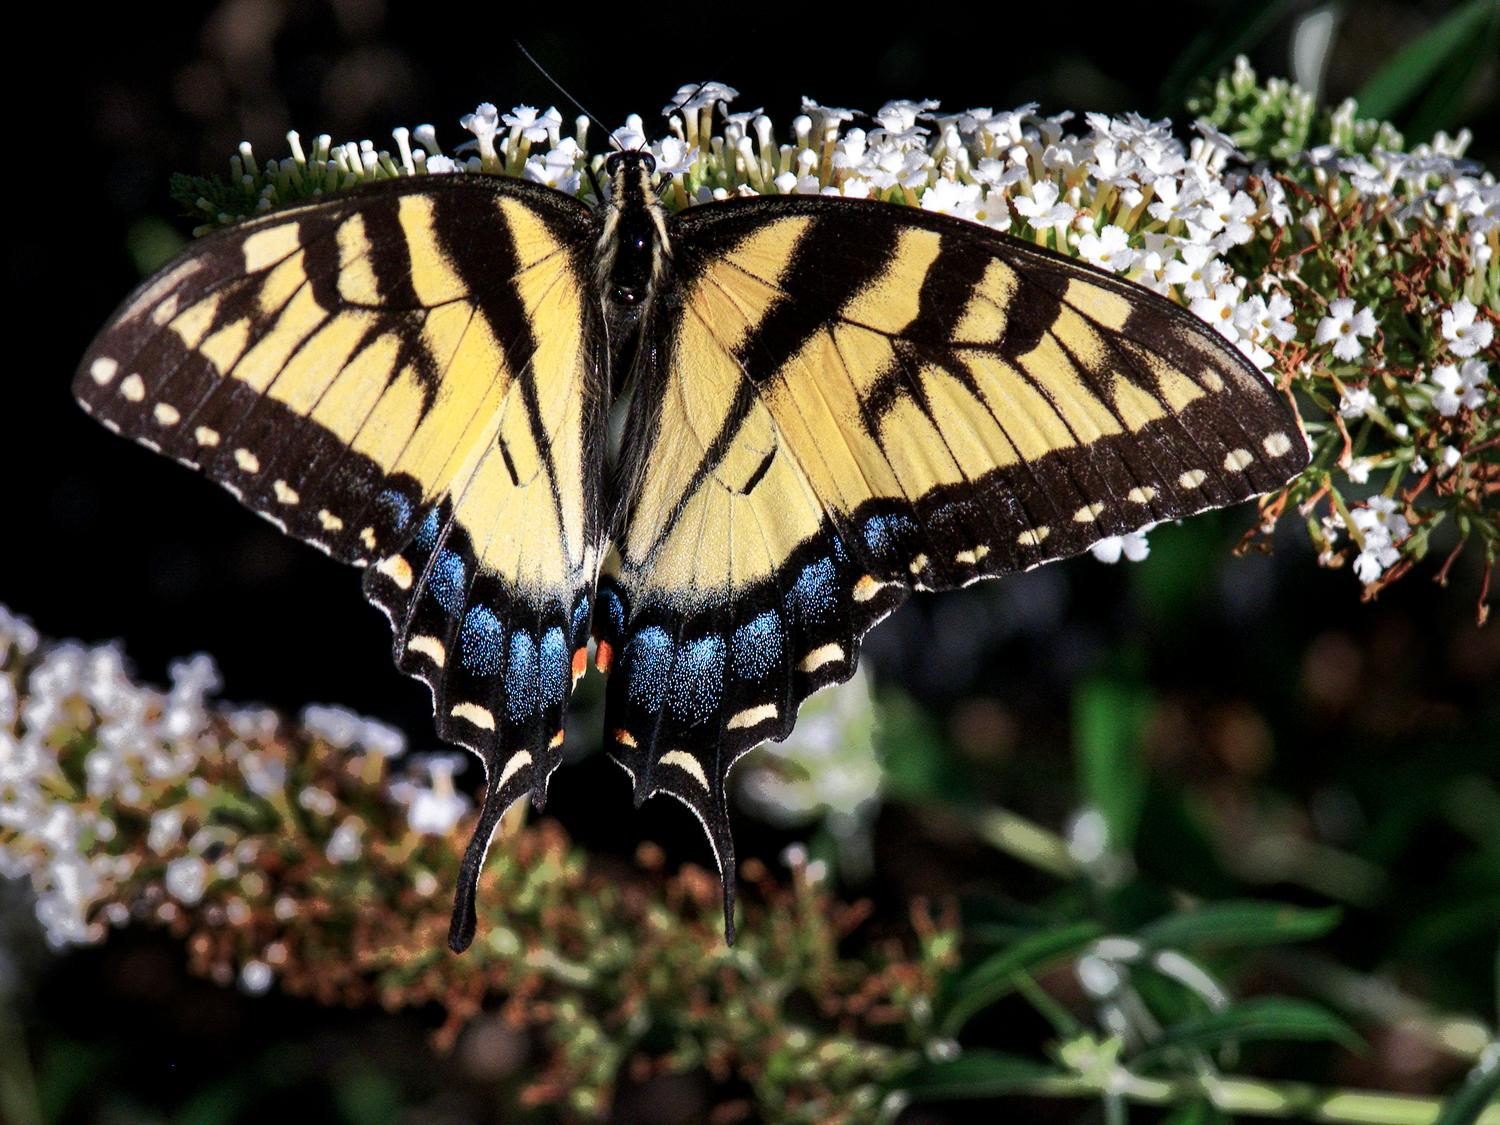 Swallowtail butterfly - Tiger swallowtail butterfly - Kodak Easyshare P880 - Tony Karp, design, art, photography, techno-impressionist, techno-impressionism, aerial photography , drone , drones , dji , mavic pro , video , 3D printing - Books -